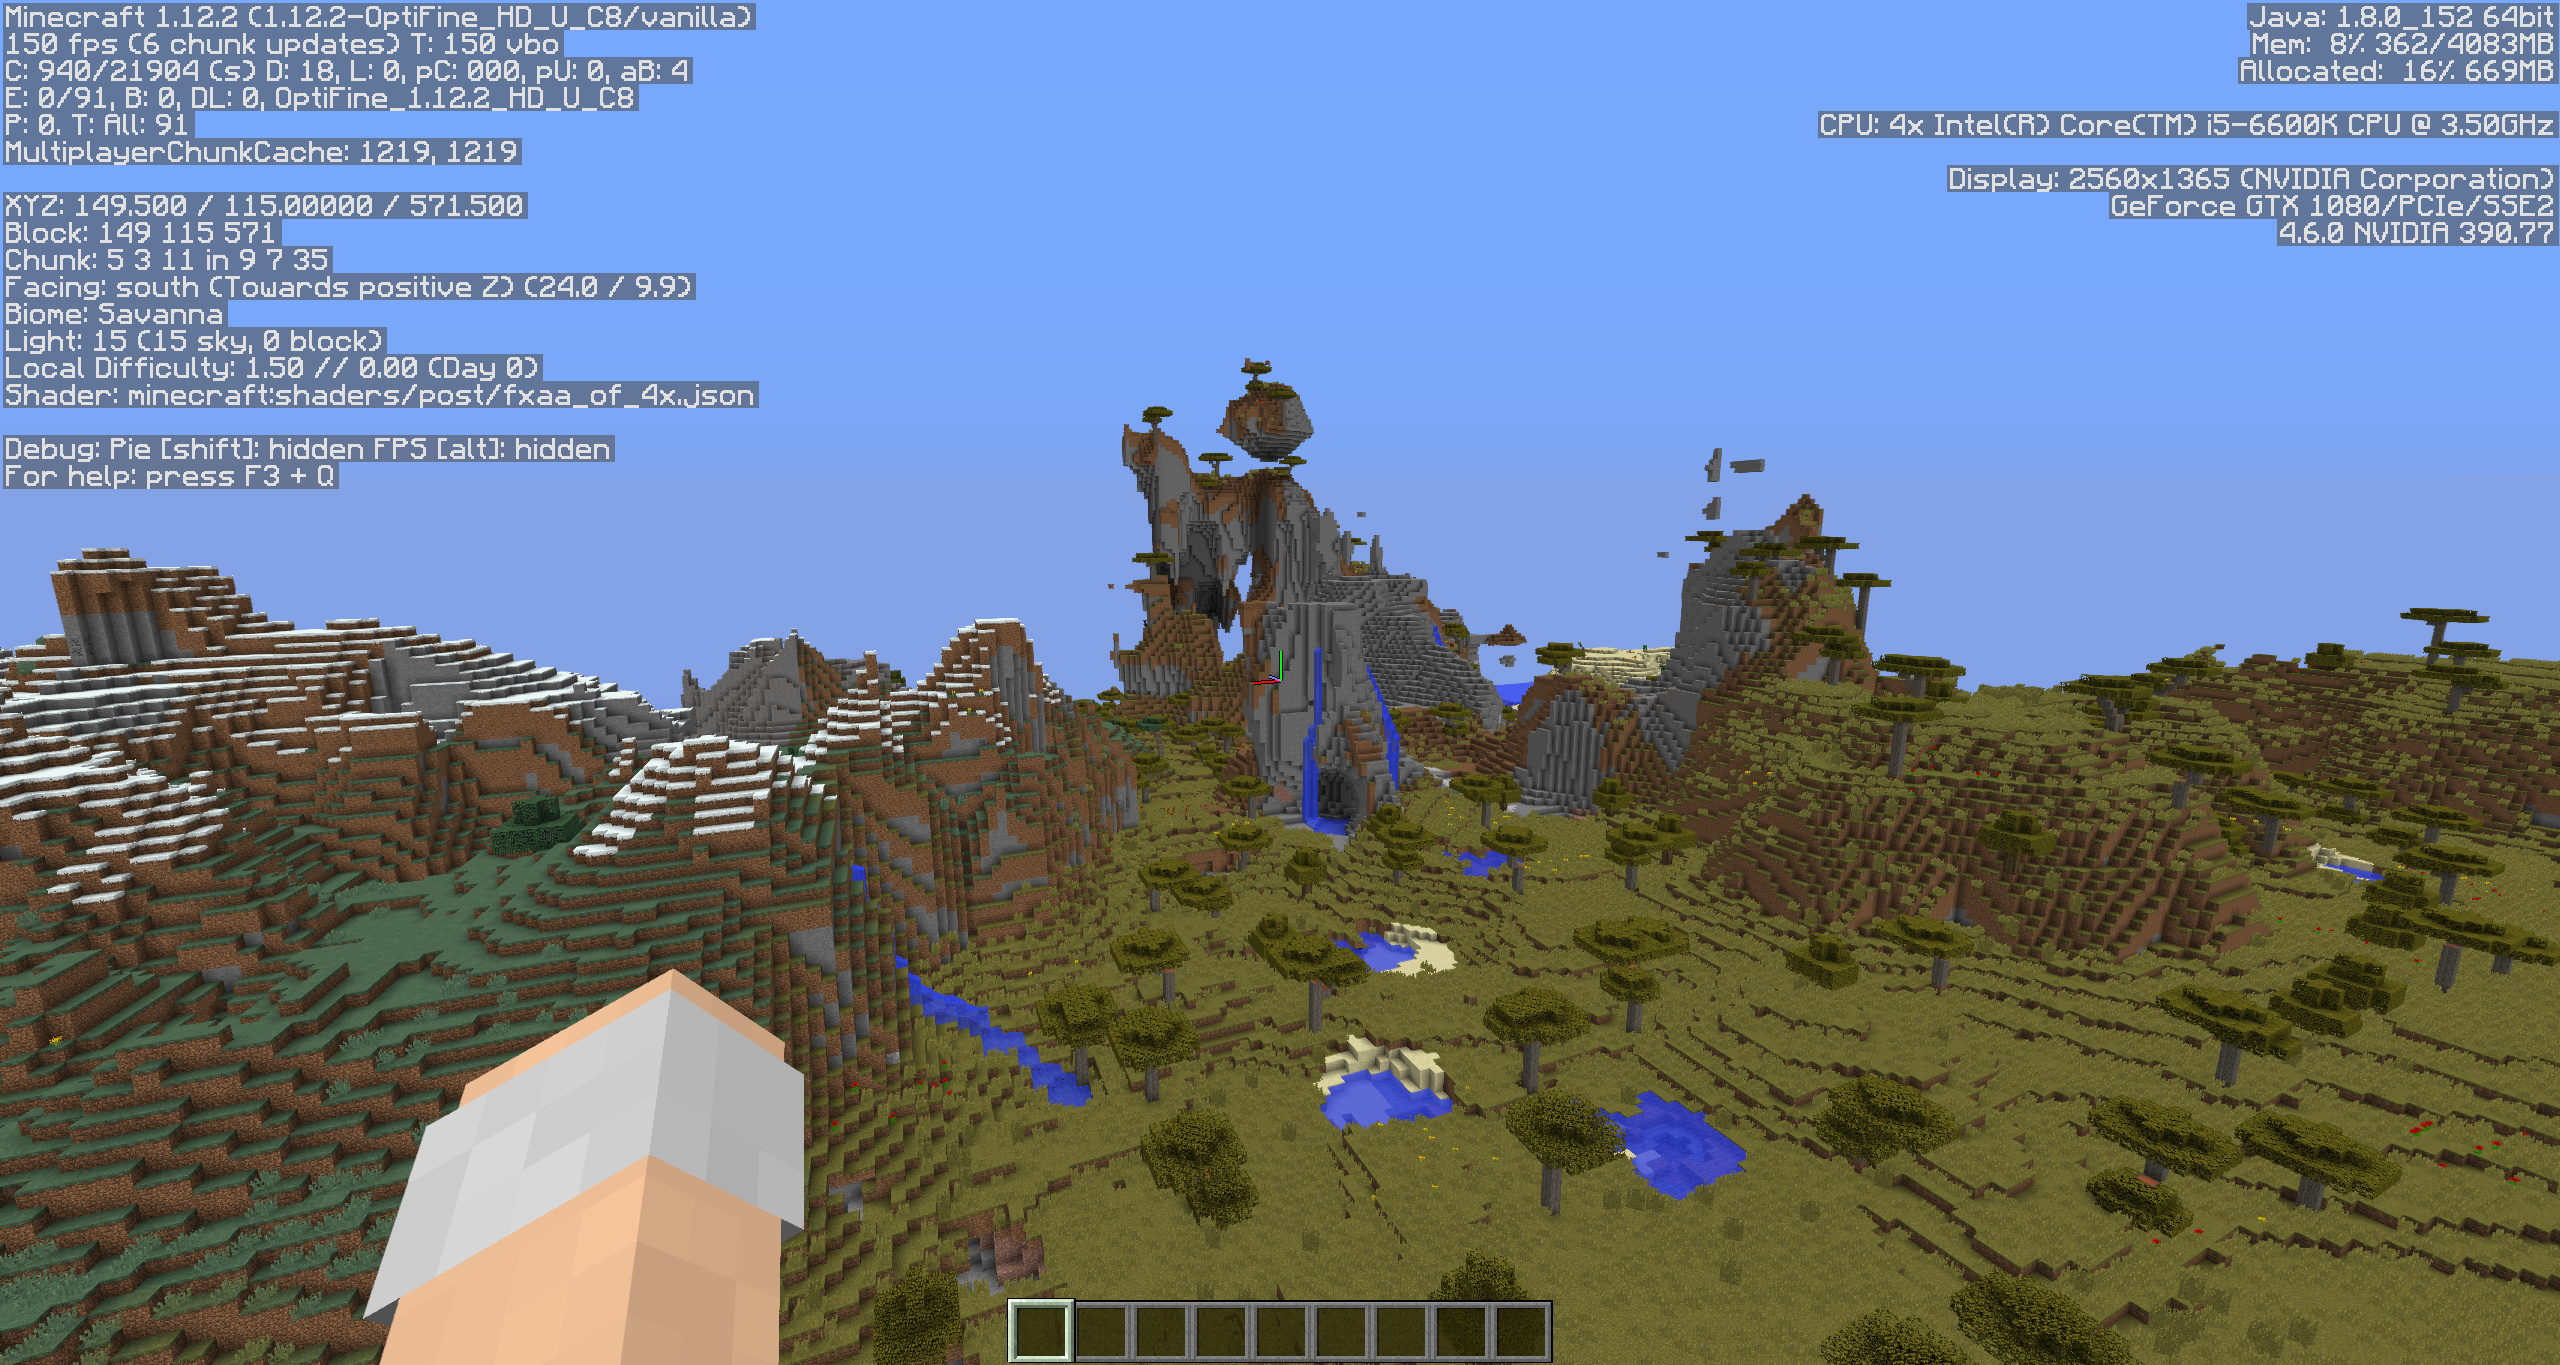 MC-125057] More or less inconsistent terrain generation in